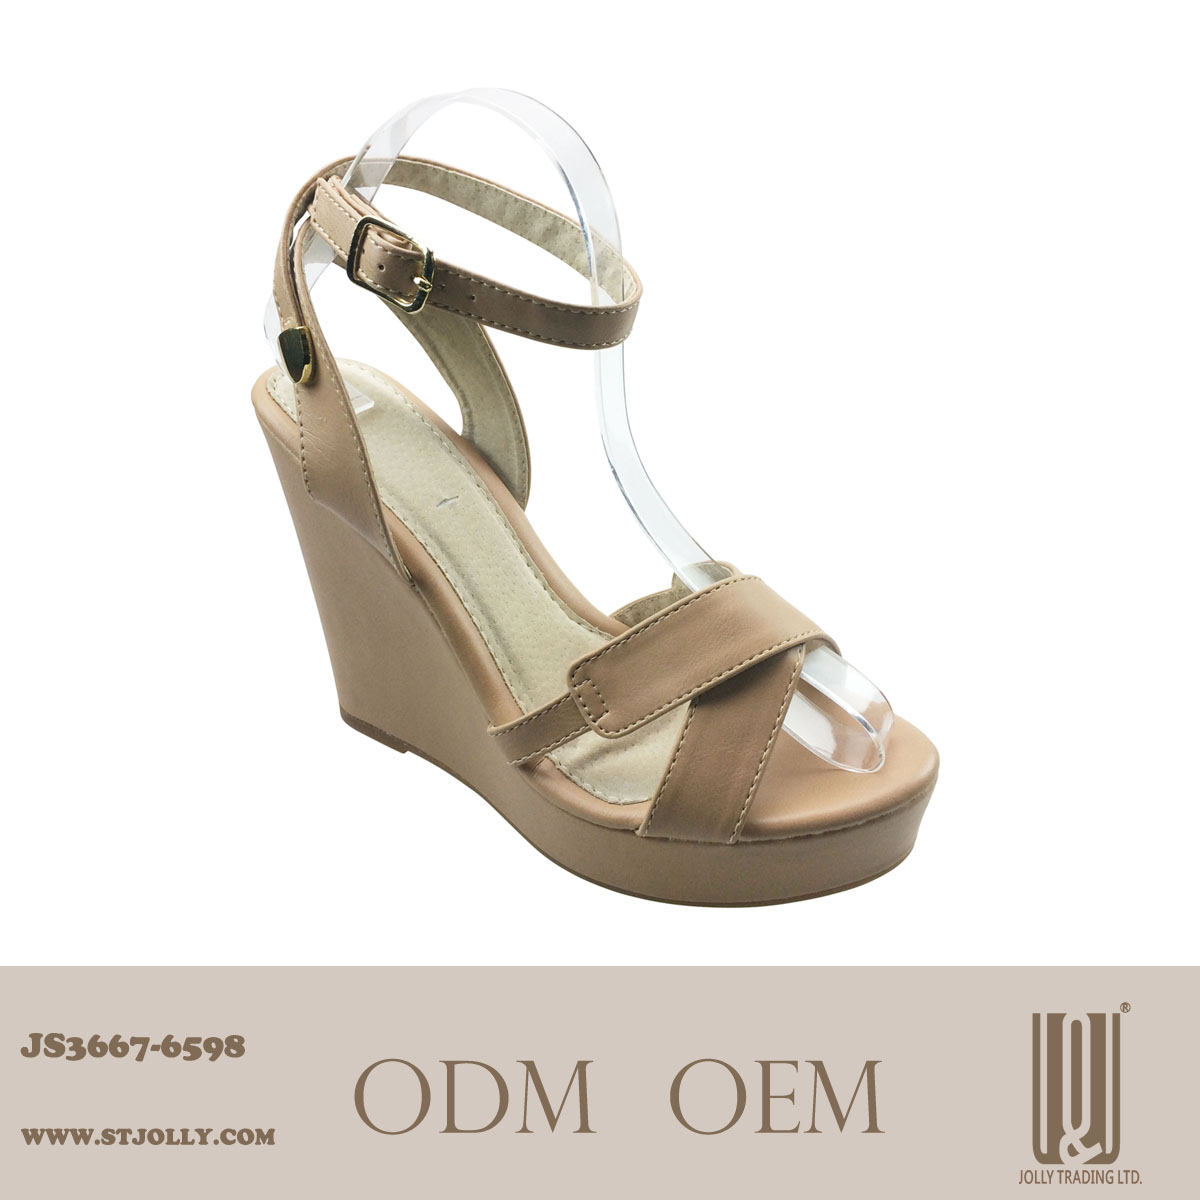 Ladies Fashion Snake skin wedges in shoes/footwear sexy design